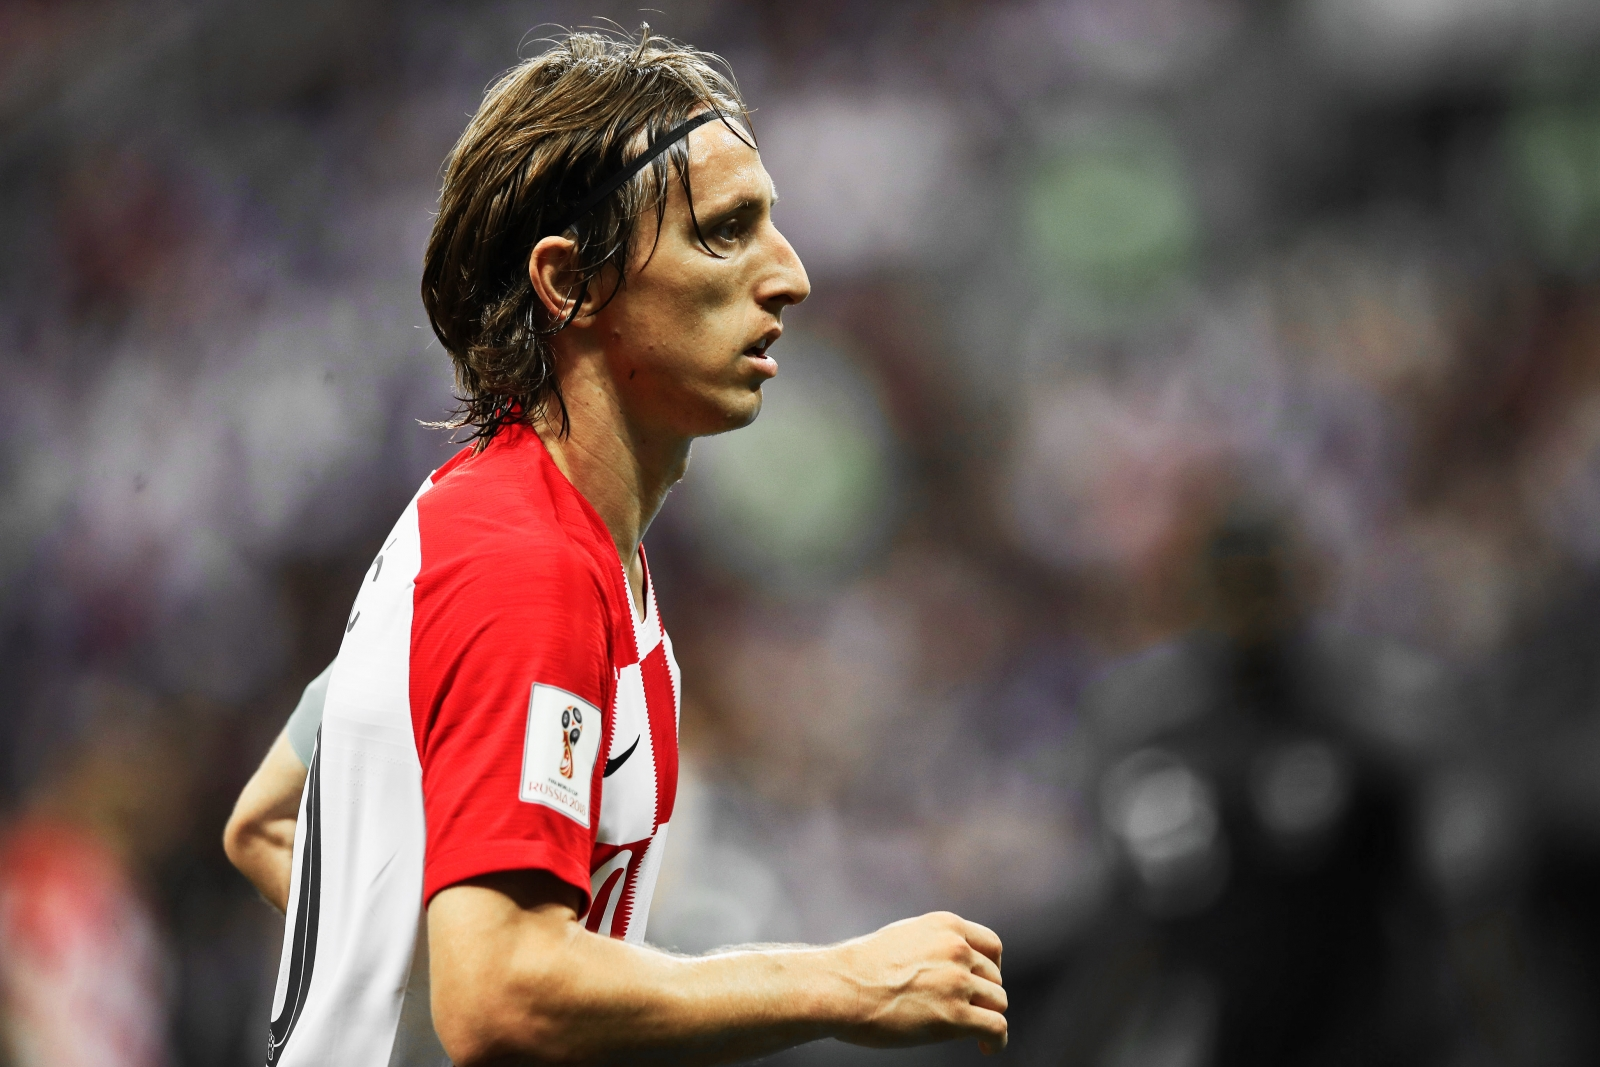 ba4d5043d80 The controversy that has damaged Luka Modrić s reputation for many in his  homeland